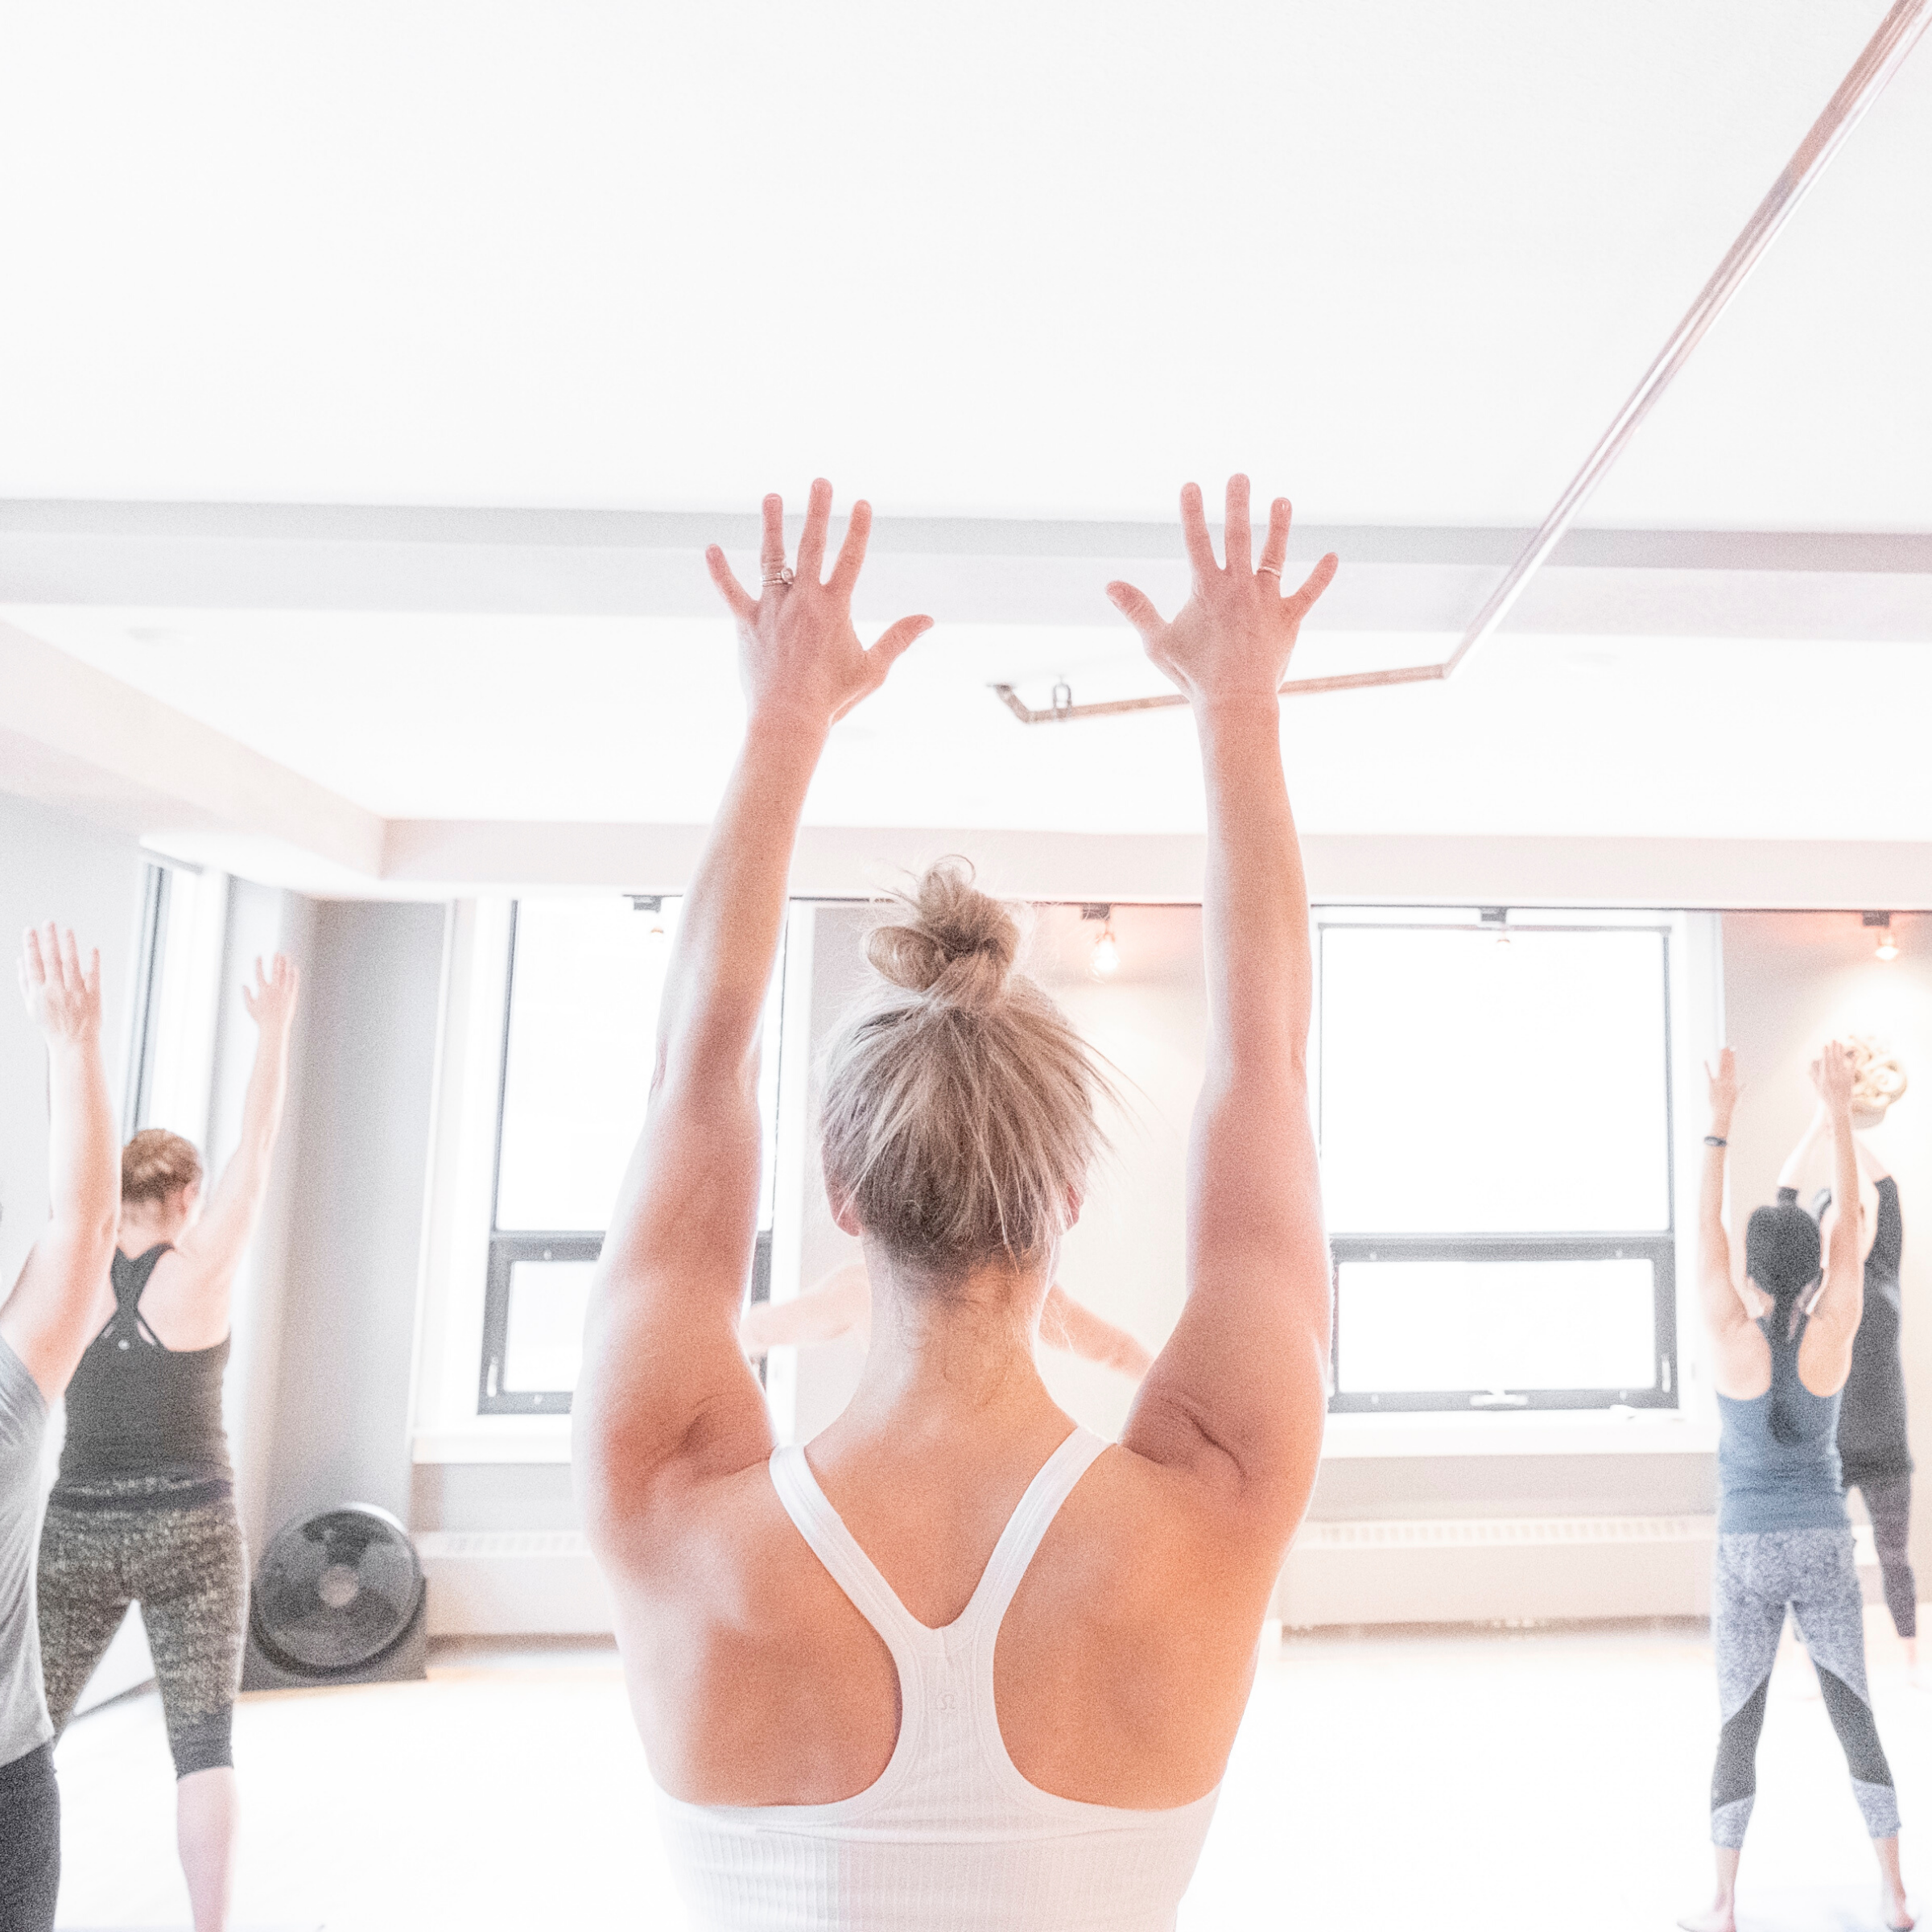 200 Hour Yoga Teacher Training PART TIME - Regina